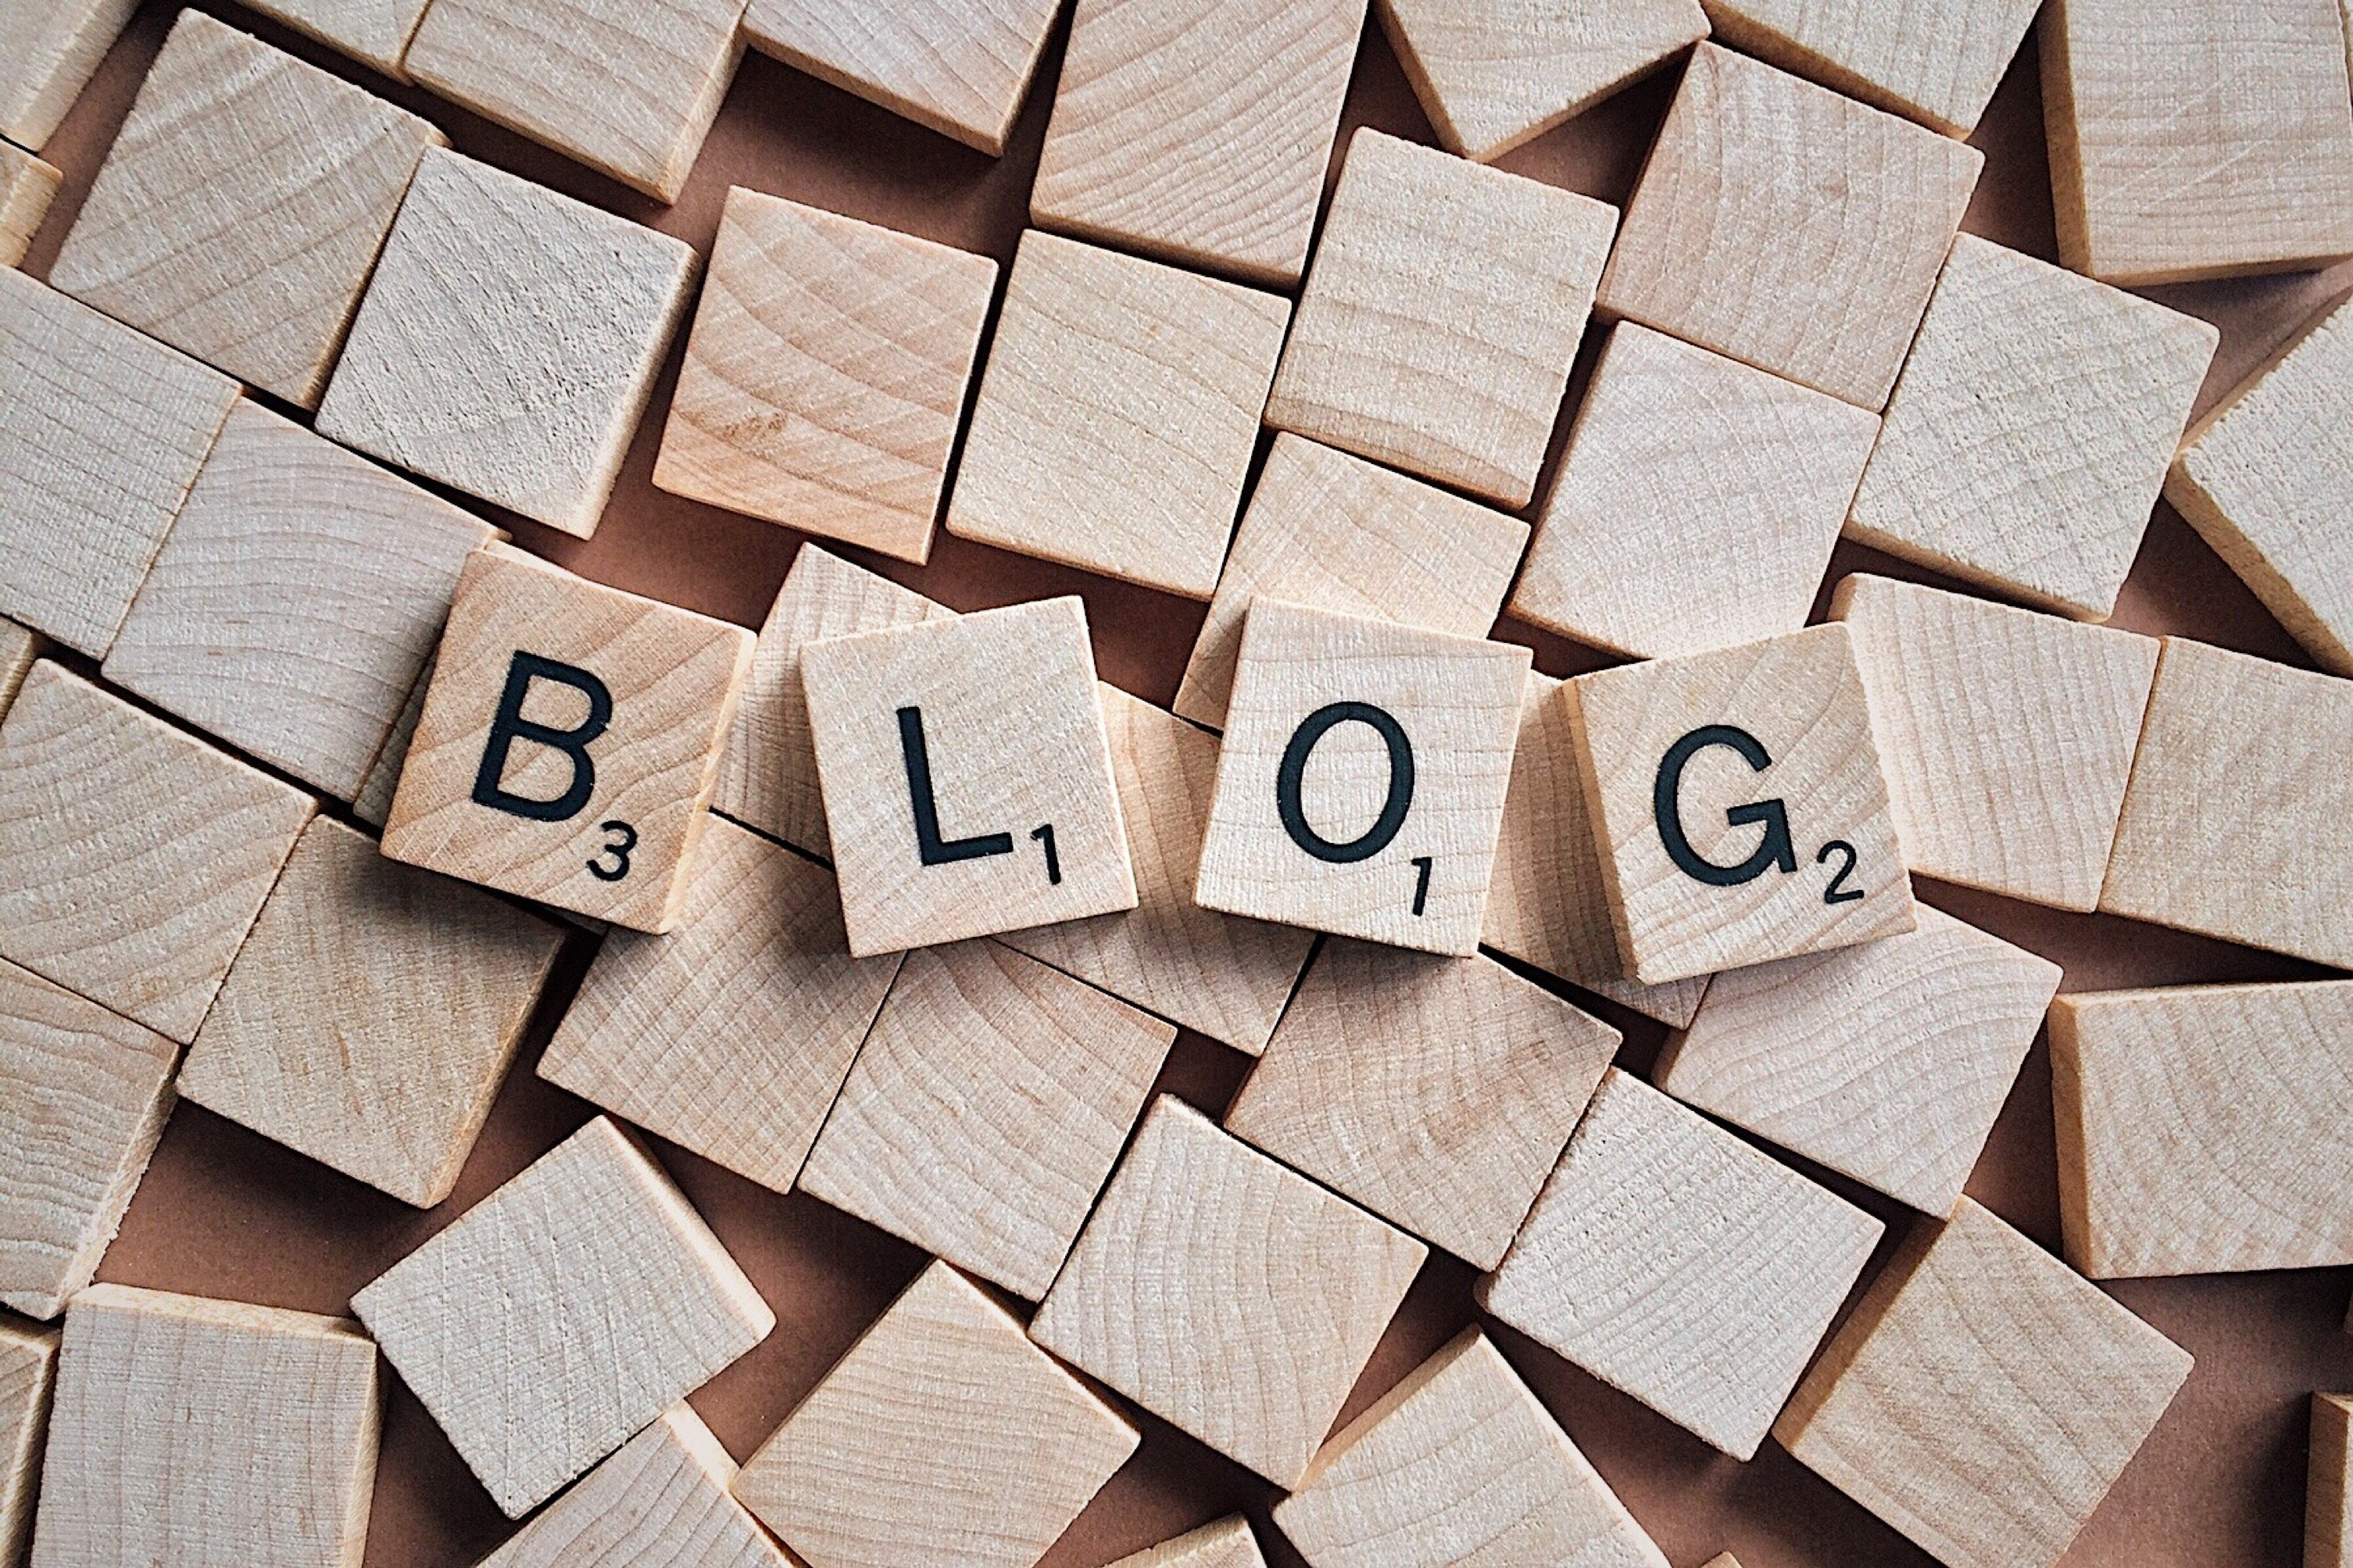 Blog Titles That Get Attention To Help Your Business